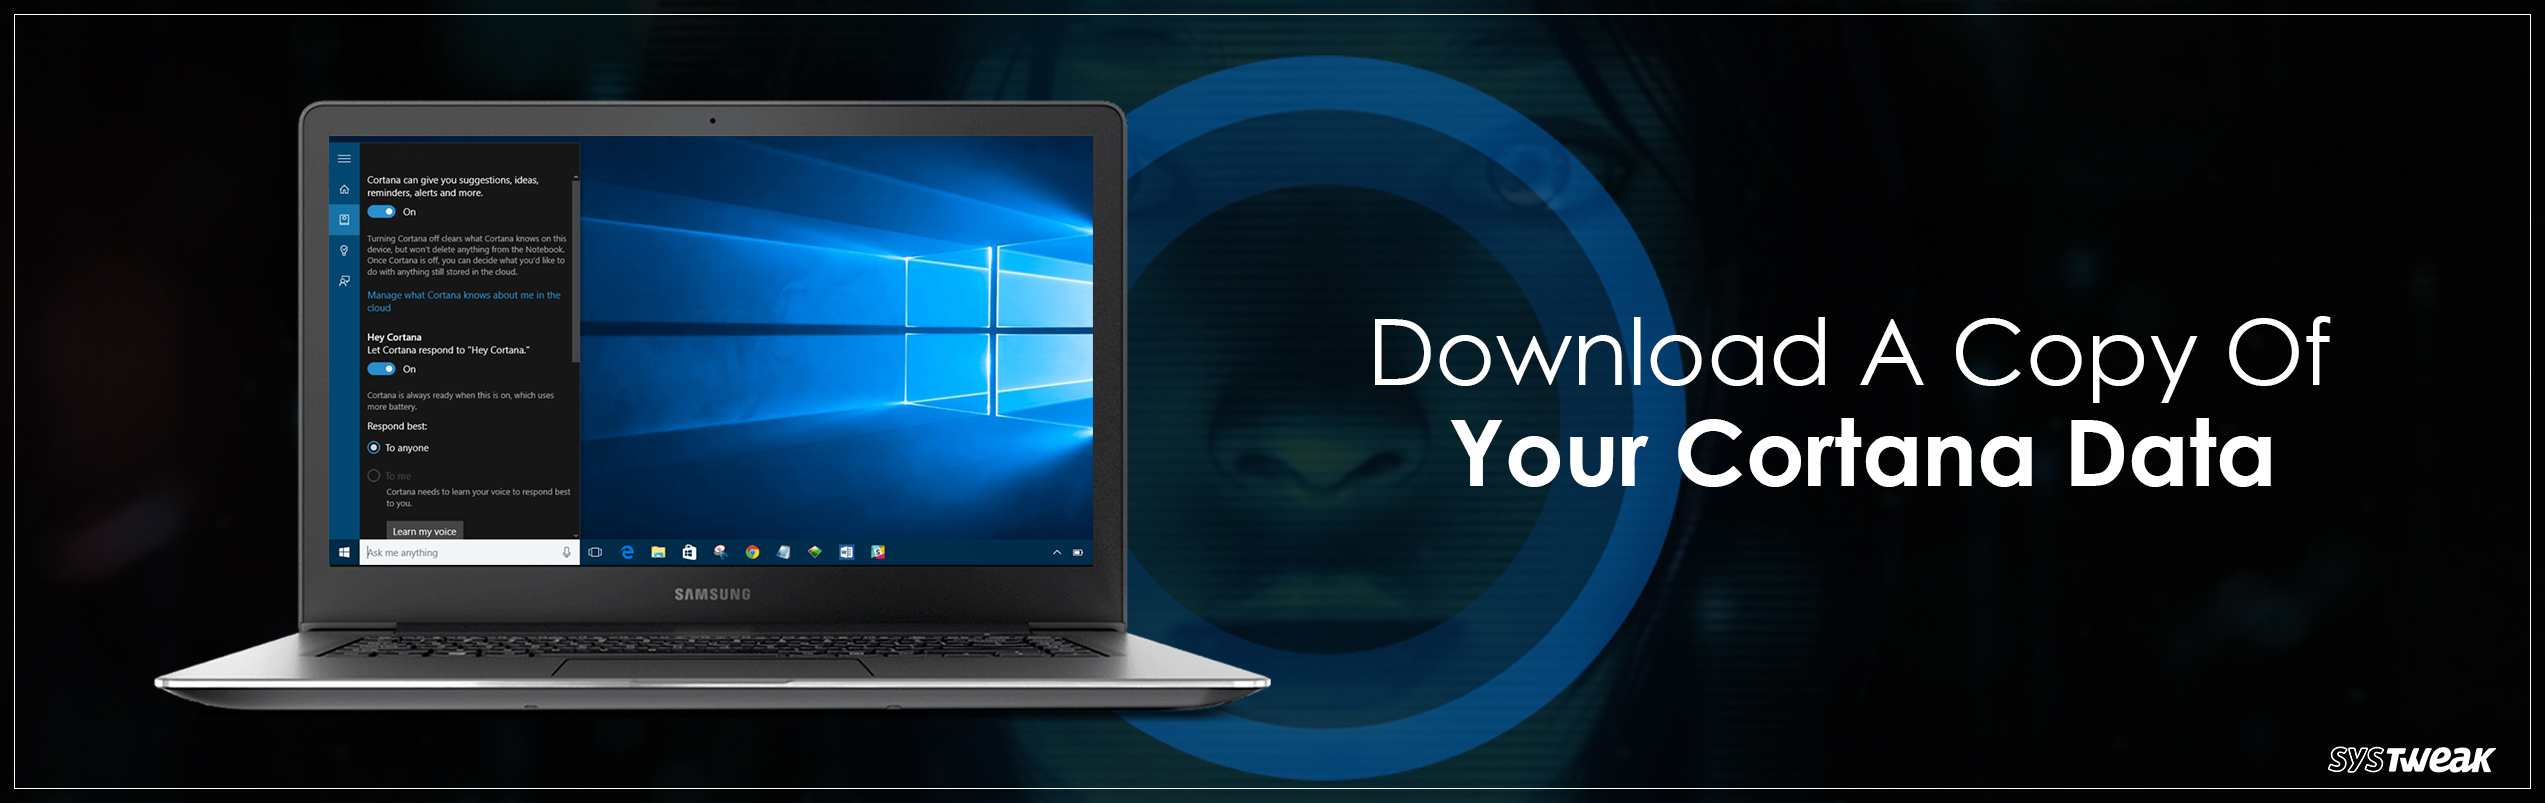 How to Download Your Cortana Data